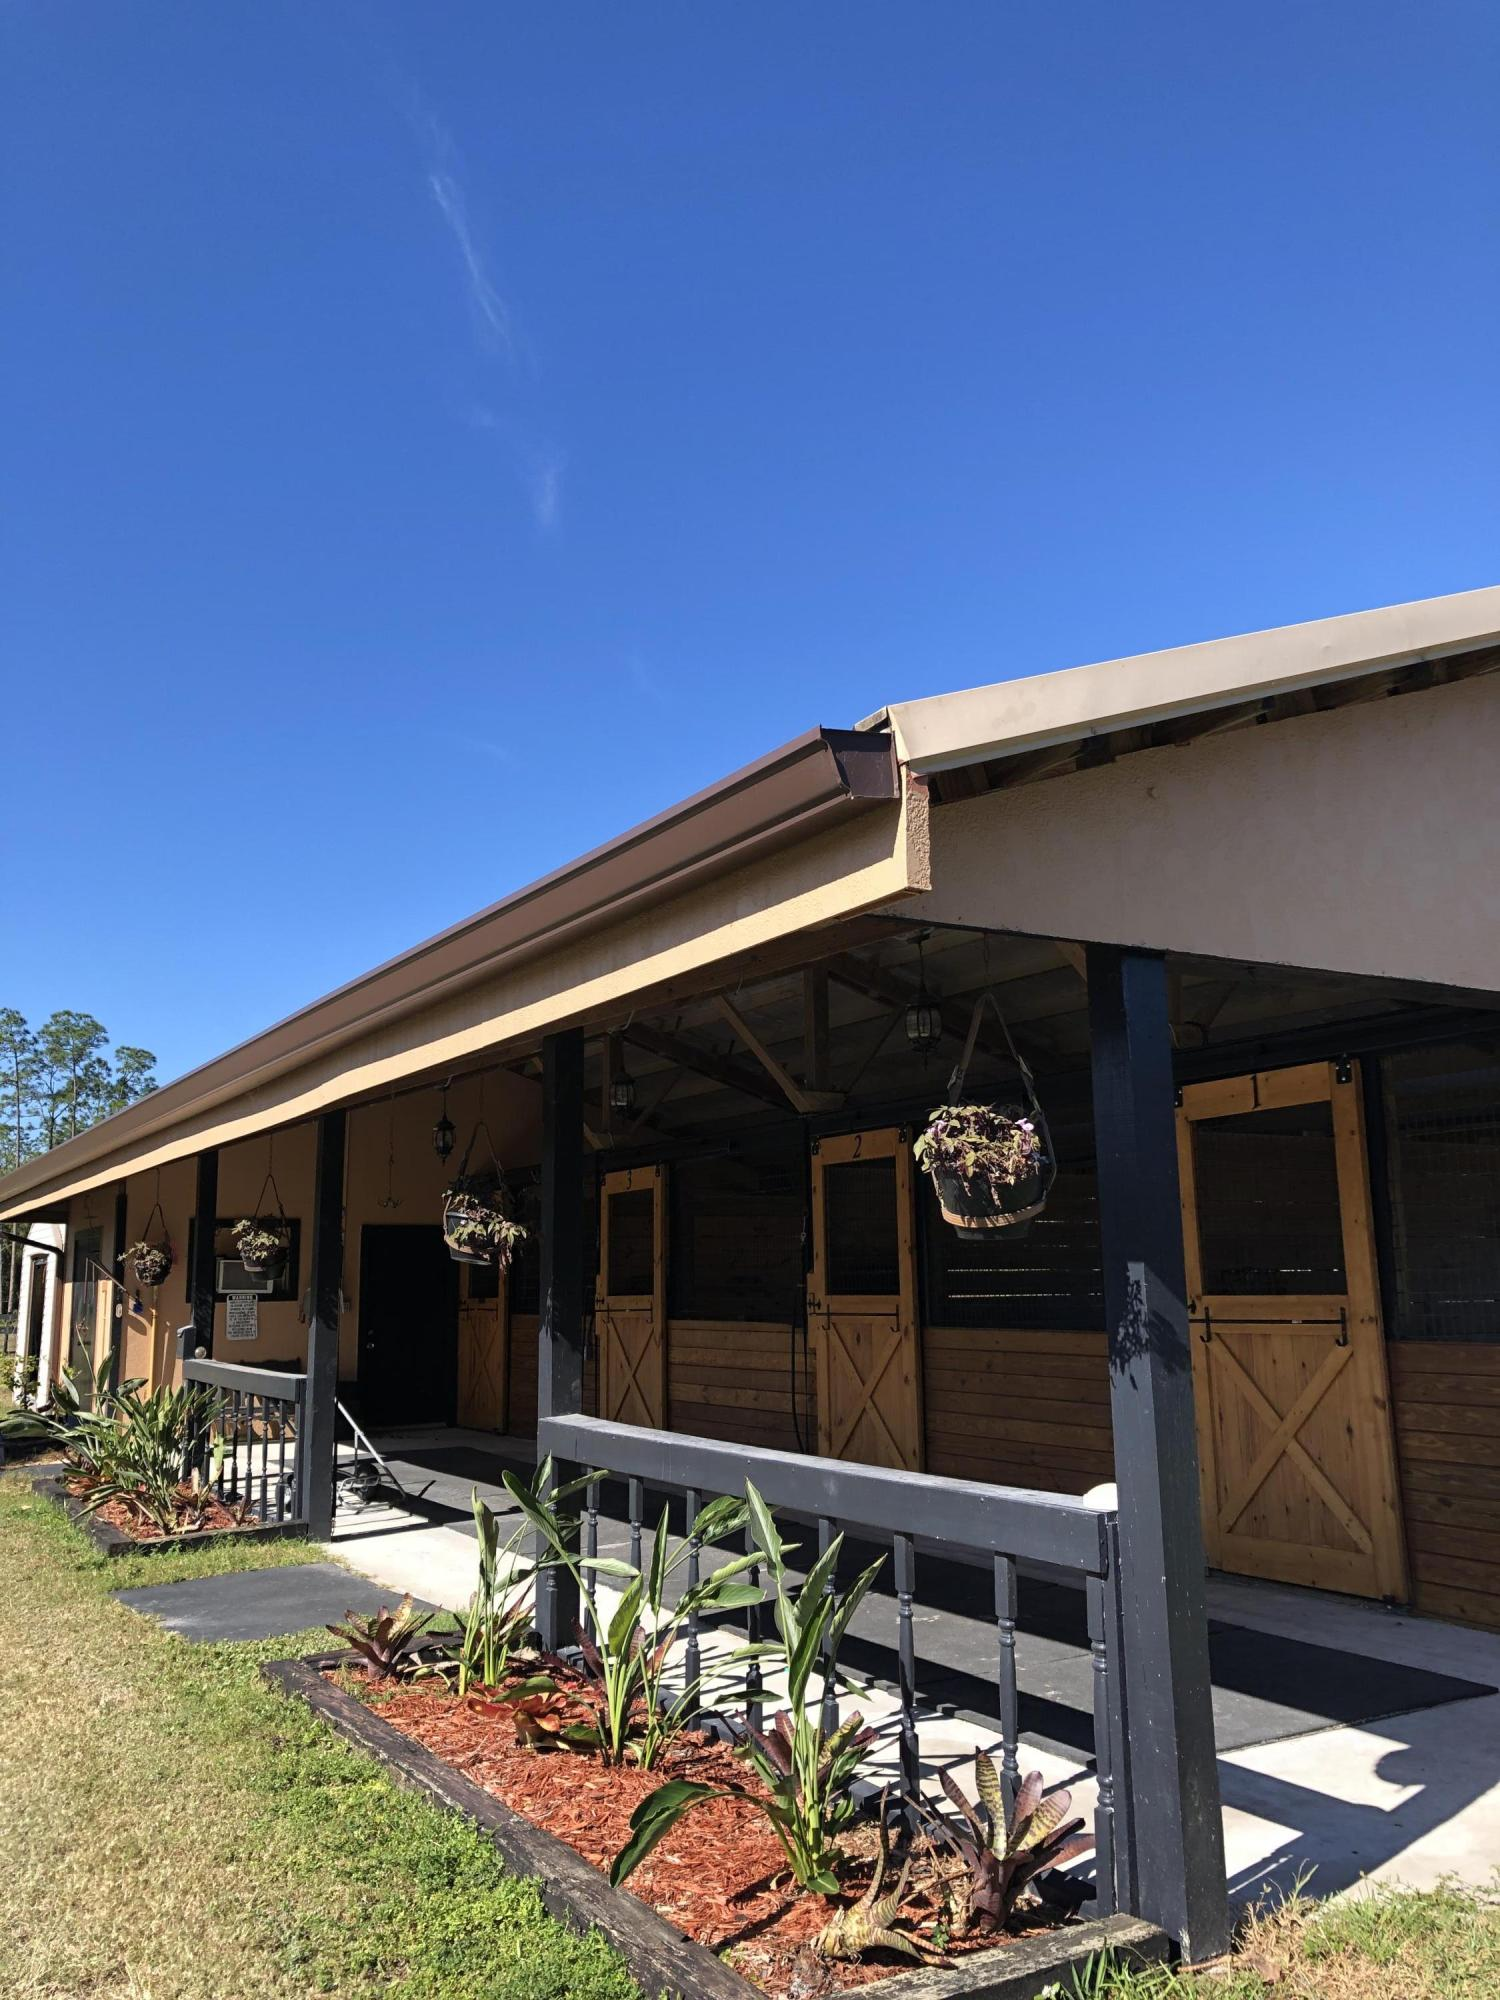 3681 Dellwood Boulevard, Loxahatchee, Florida 33470, ,Barn,For Rent,Dellwood,RX-10490454